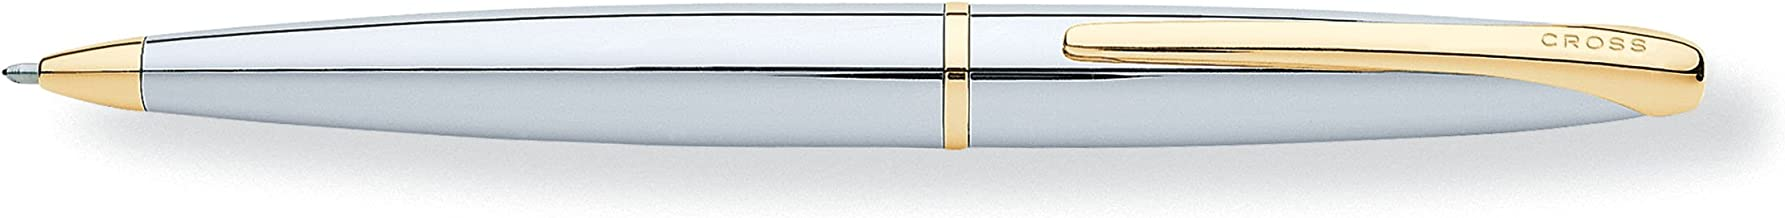 Cross ATX, Medalist, Ballpoint Pen, with Two-Tone Combination of Polished Chrome and 23 Karat Gold Plated Appointments (882-10)